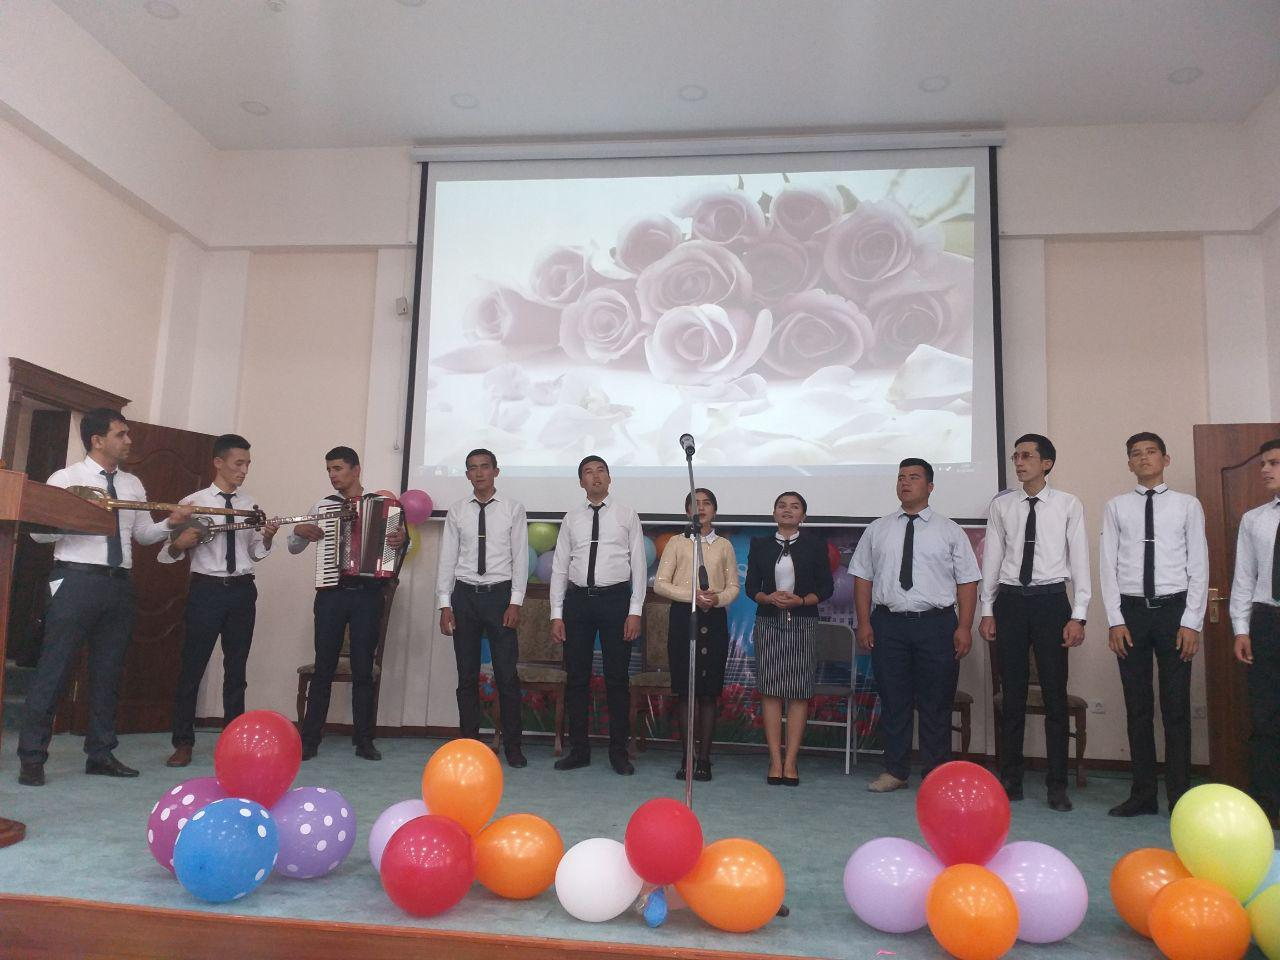 On October 1, there was an event dedicated to the Day of Teachers and Mentors